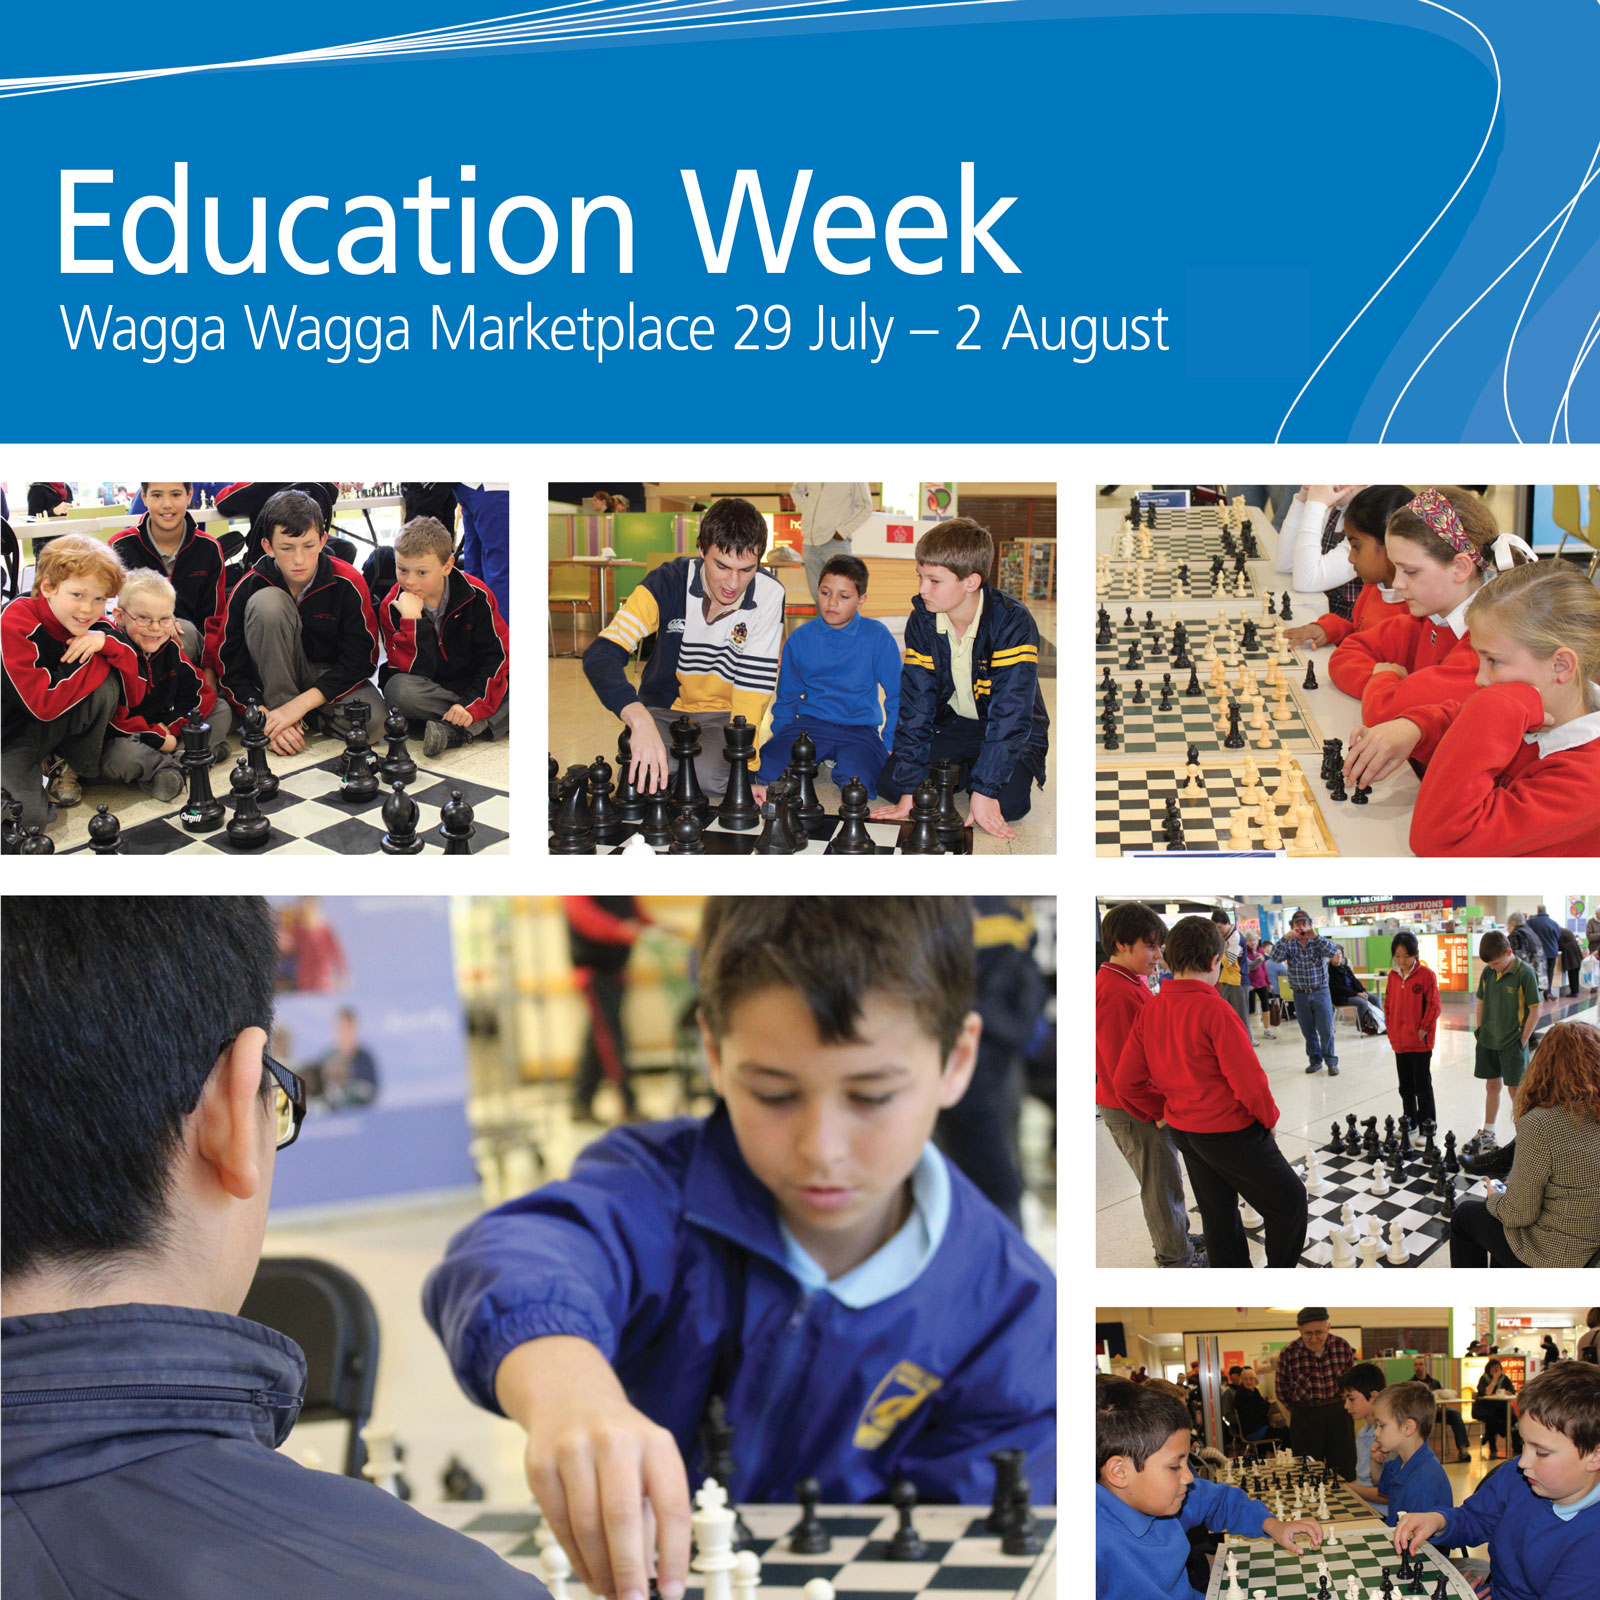 Education Week Chess Competition